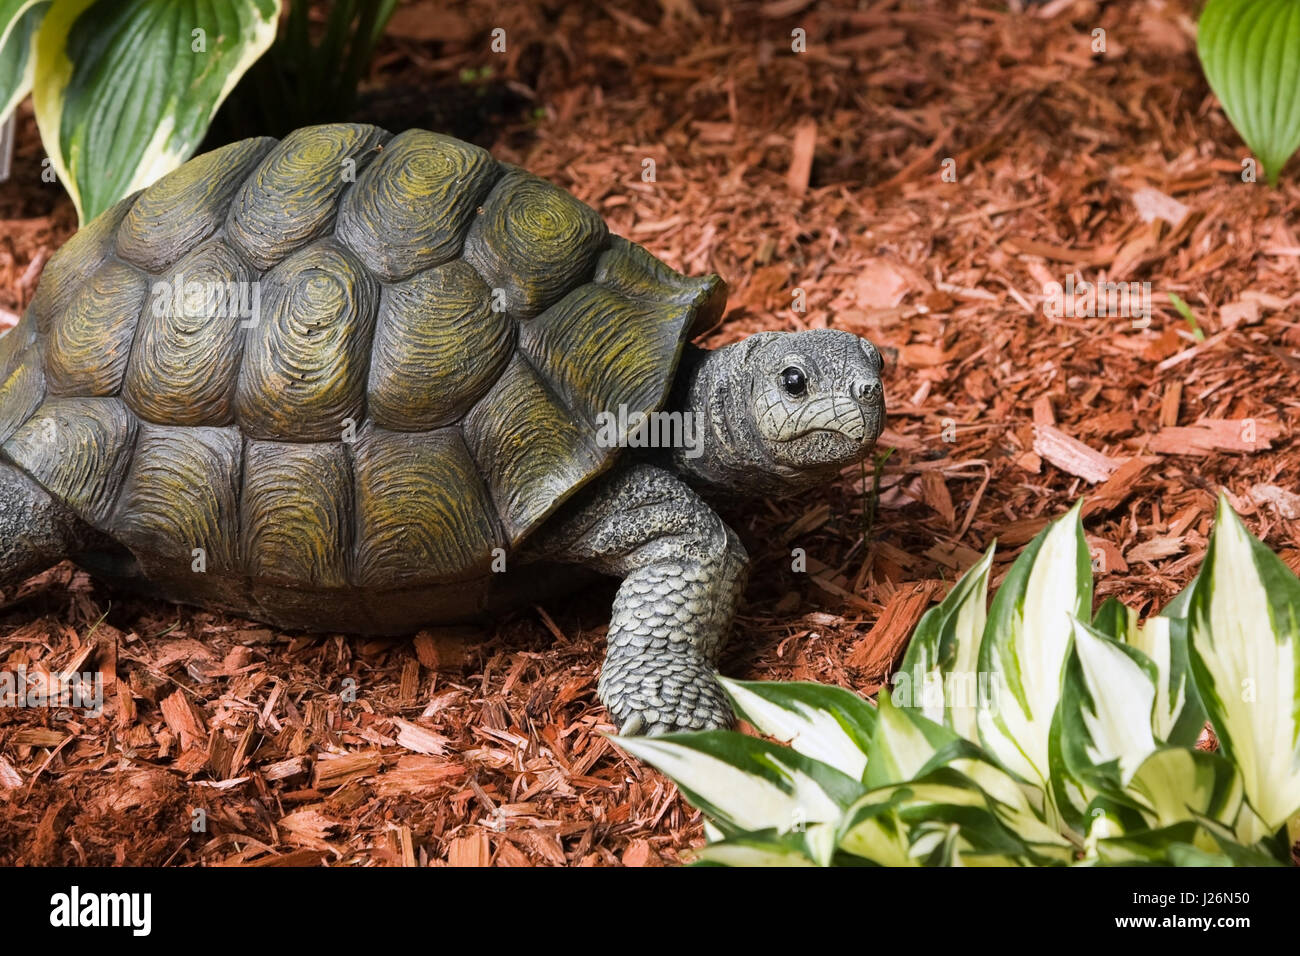 Turtle statue in a landscaped front yard garden in summer Stock ...